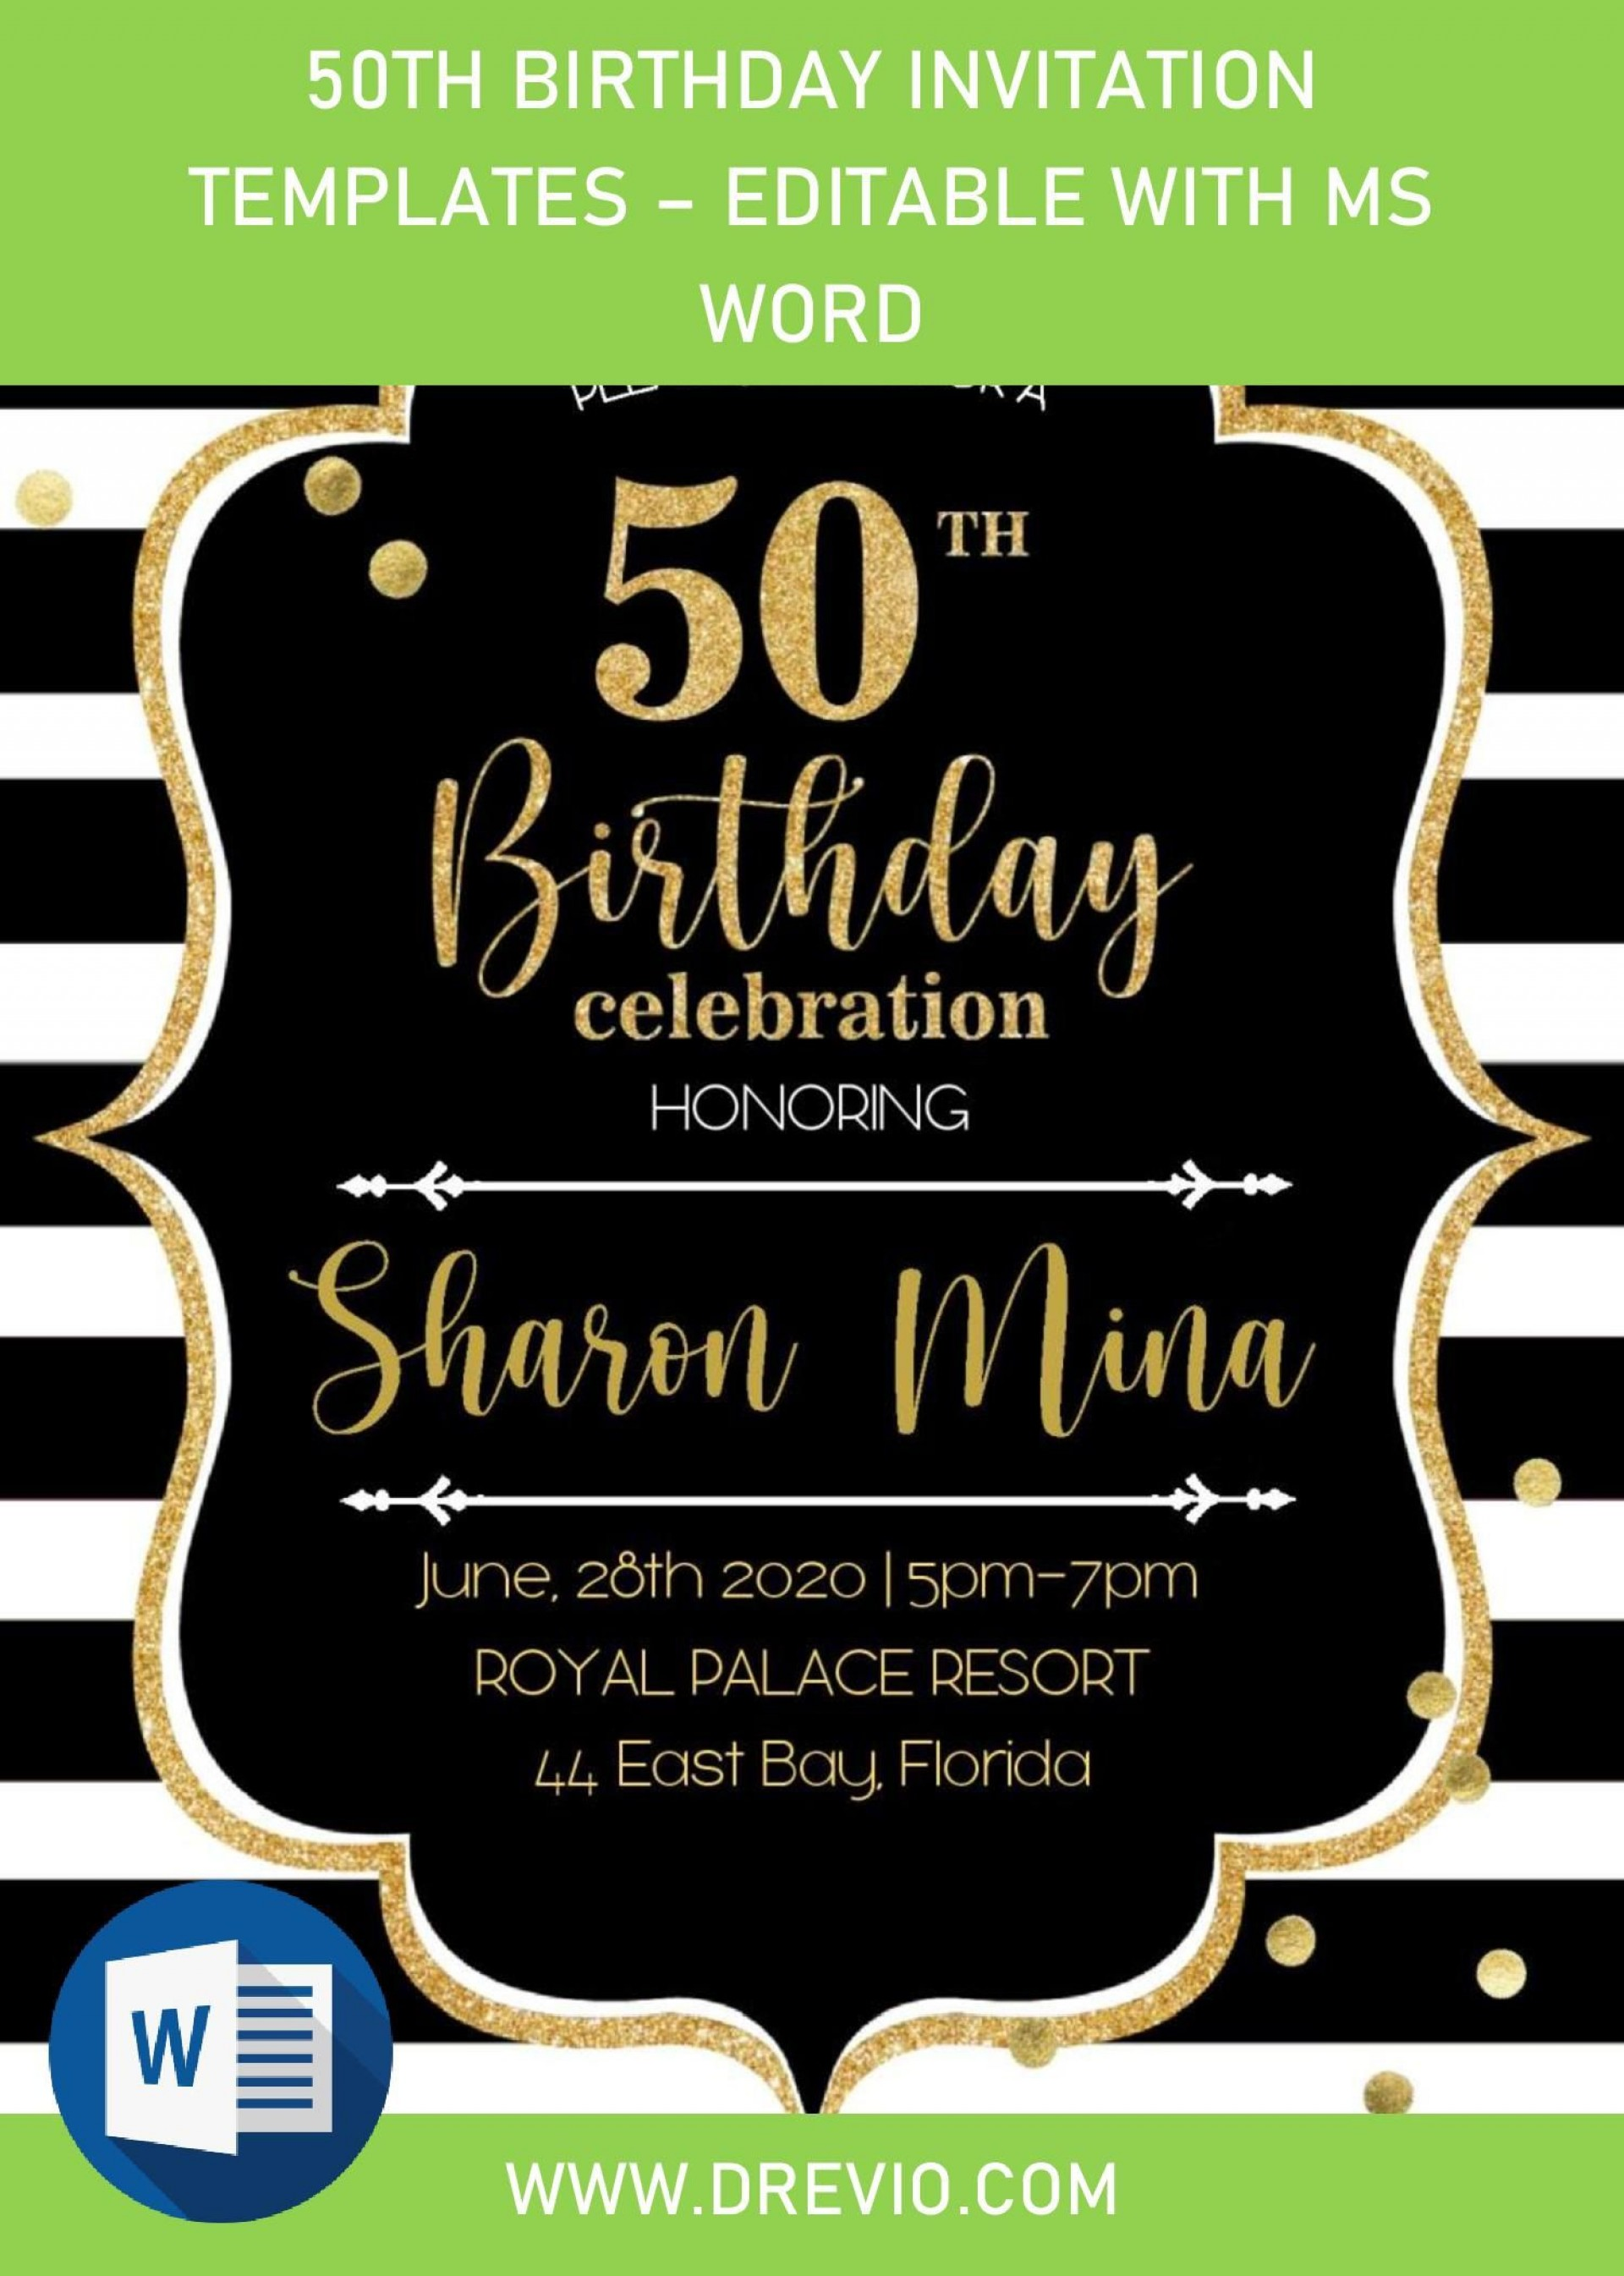 Birthday Invitation Word Template Download ~ Addictionary